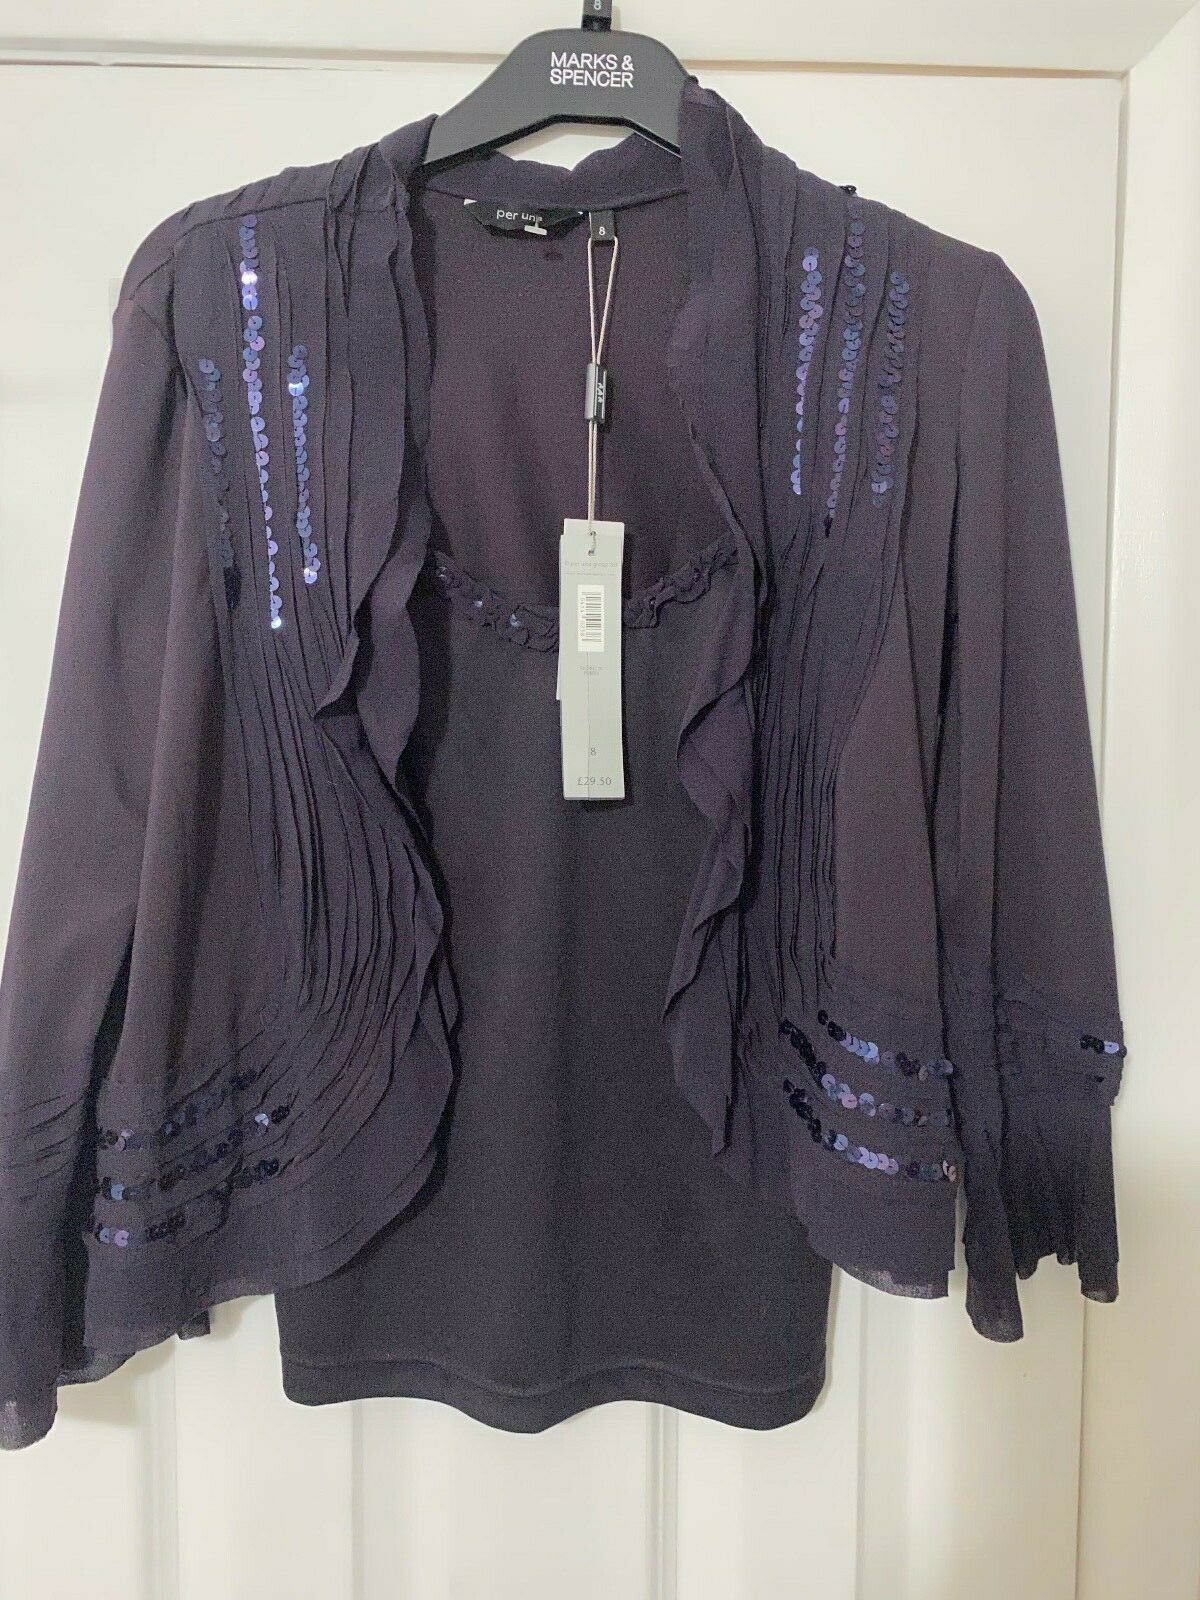 Per Una Purple Sequin Shrug Cardigan with Matching Camisole New with Tags Size 8